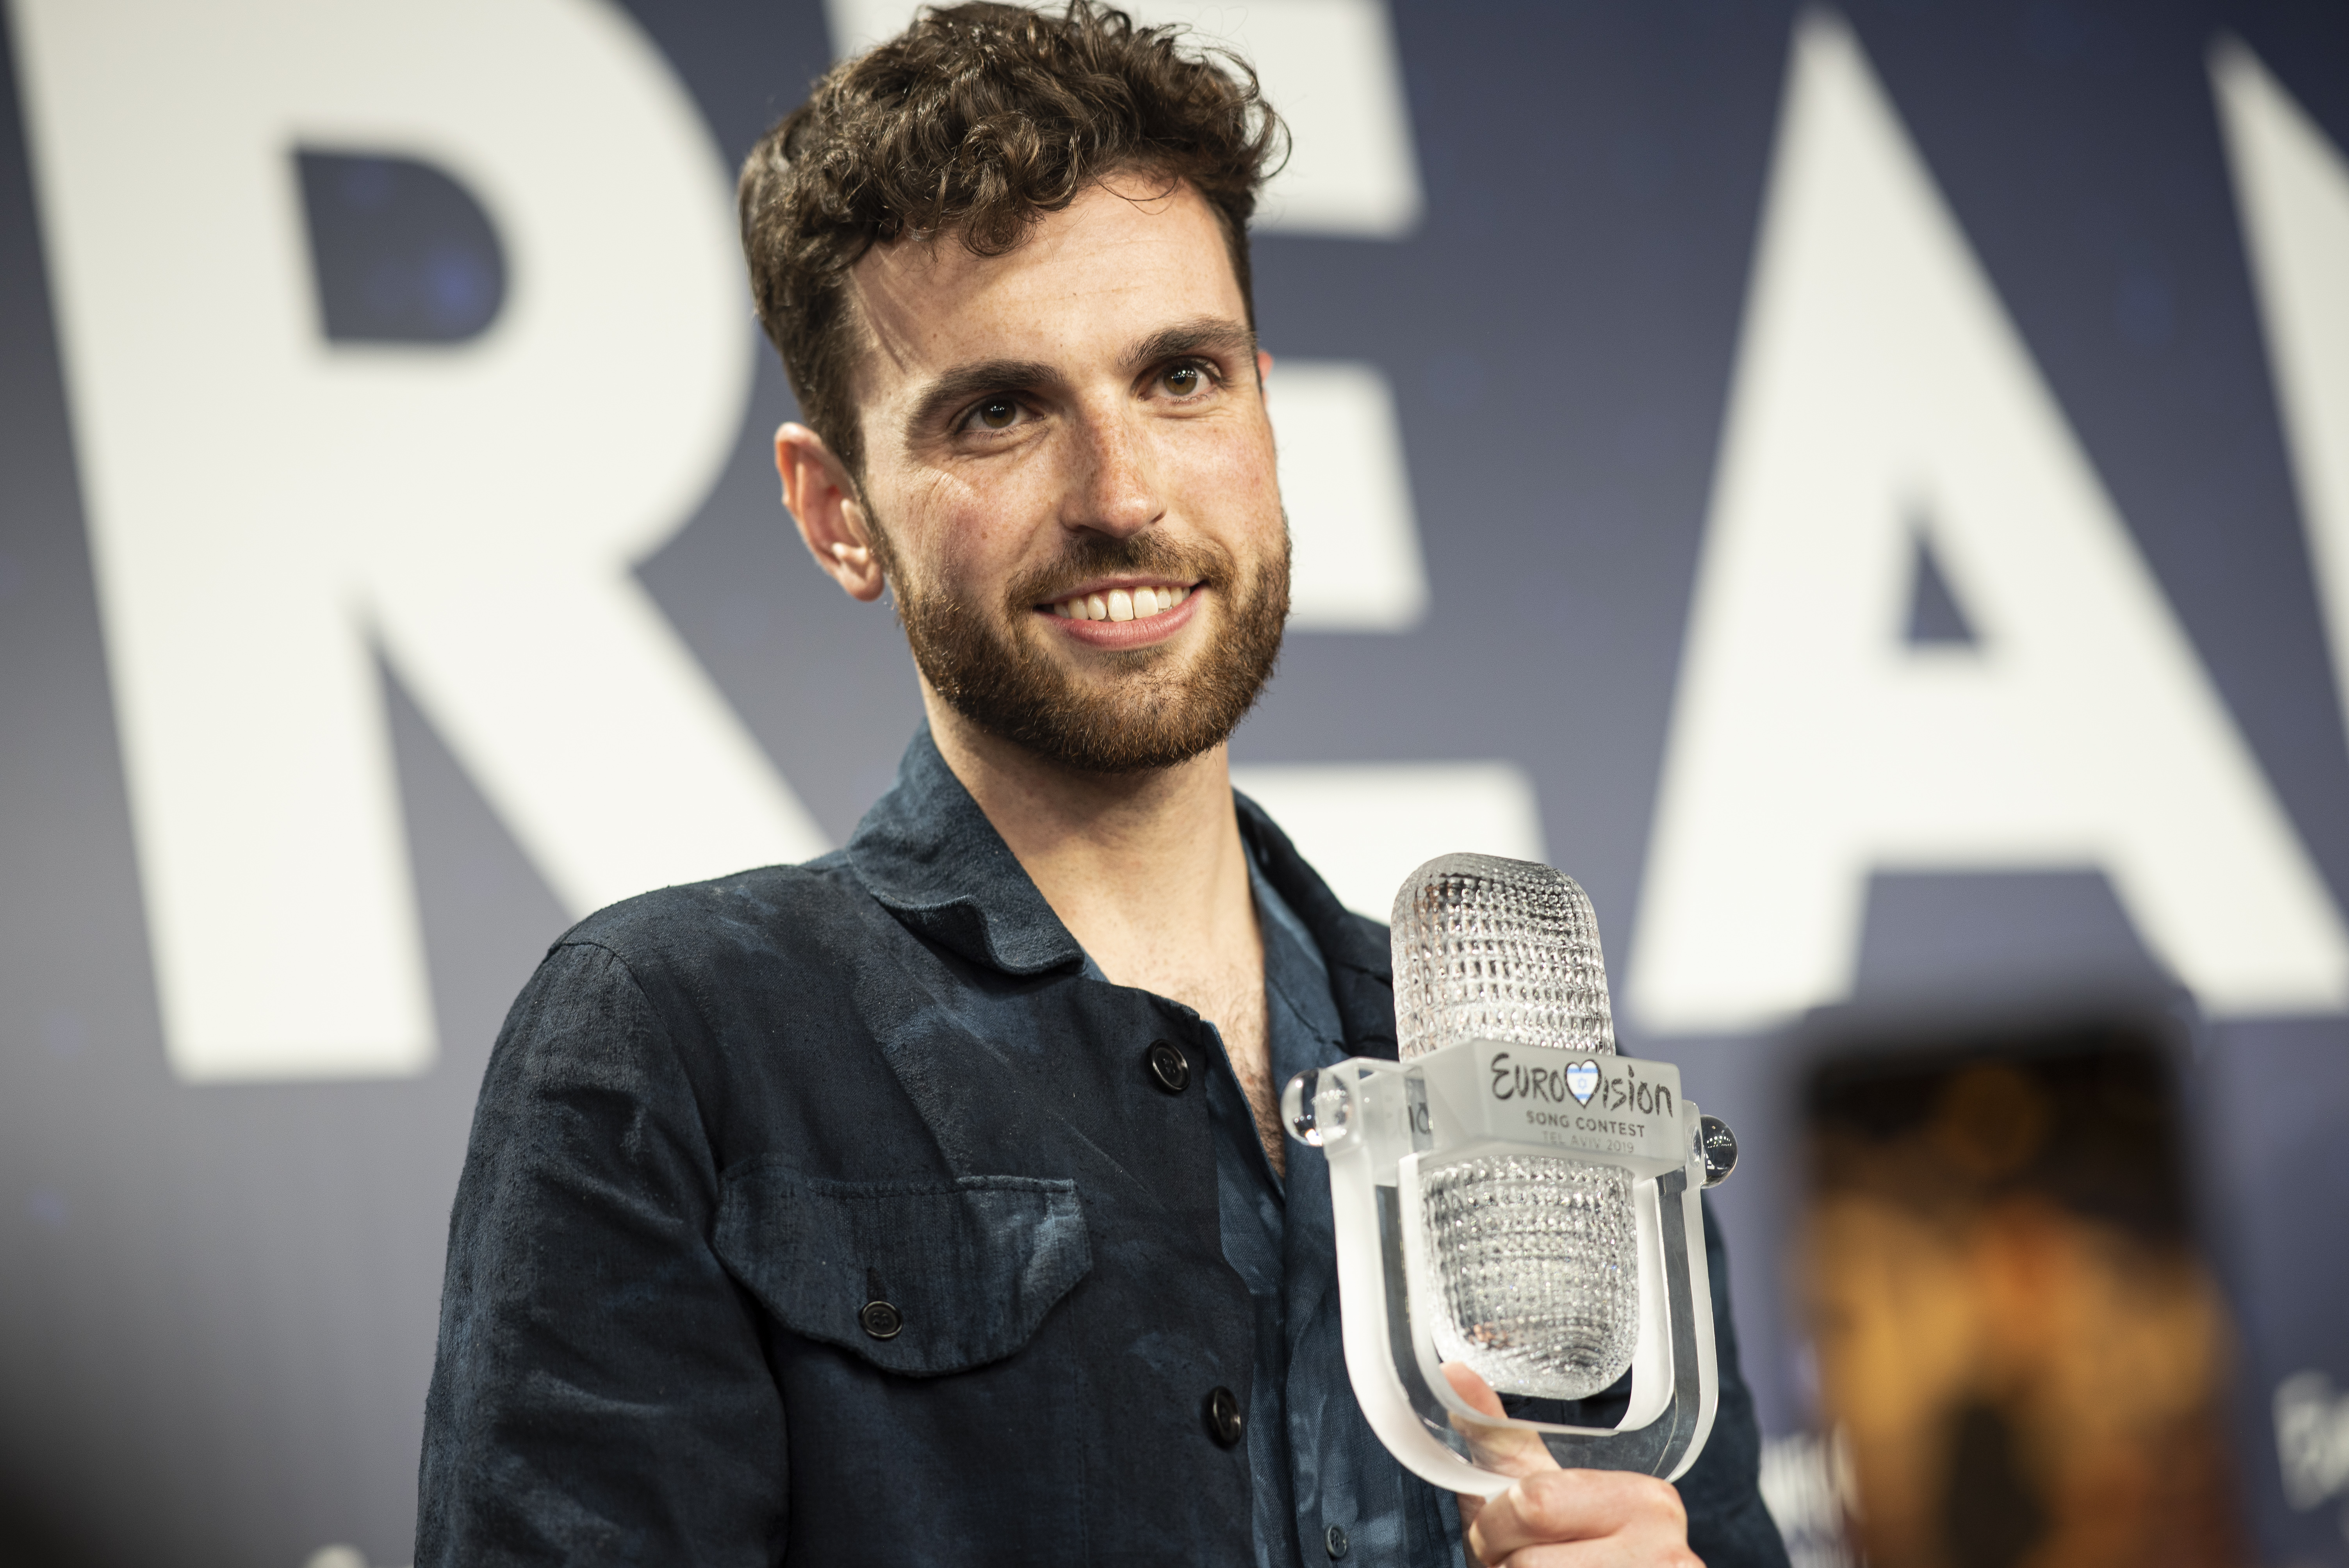 Duncan Laurence and the Netherlands win 2019 Eurovision Song